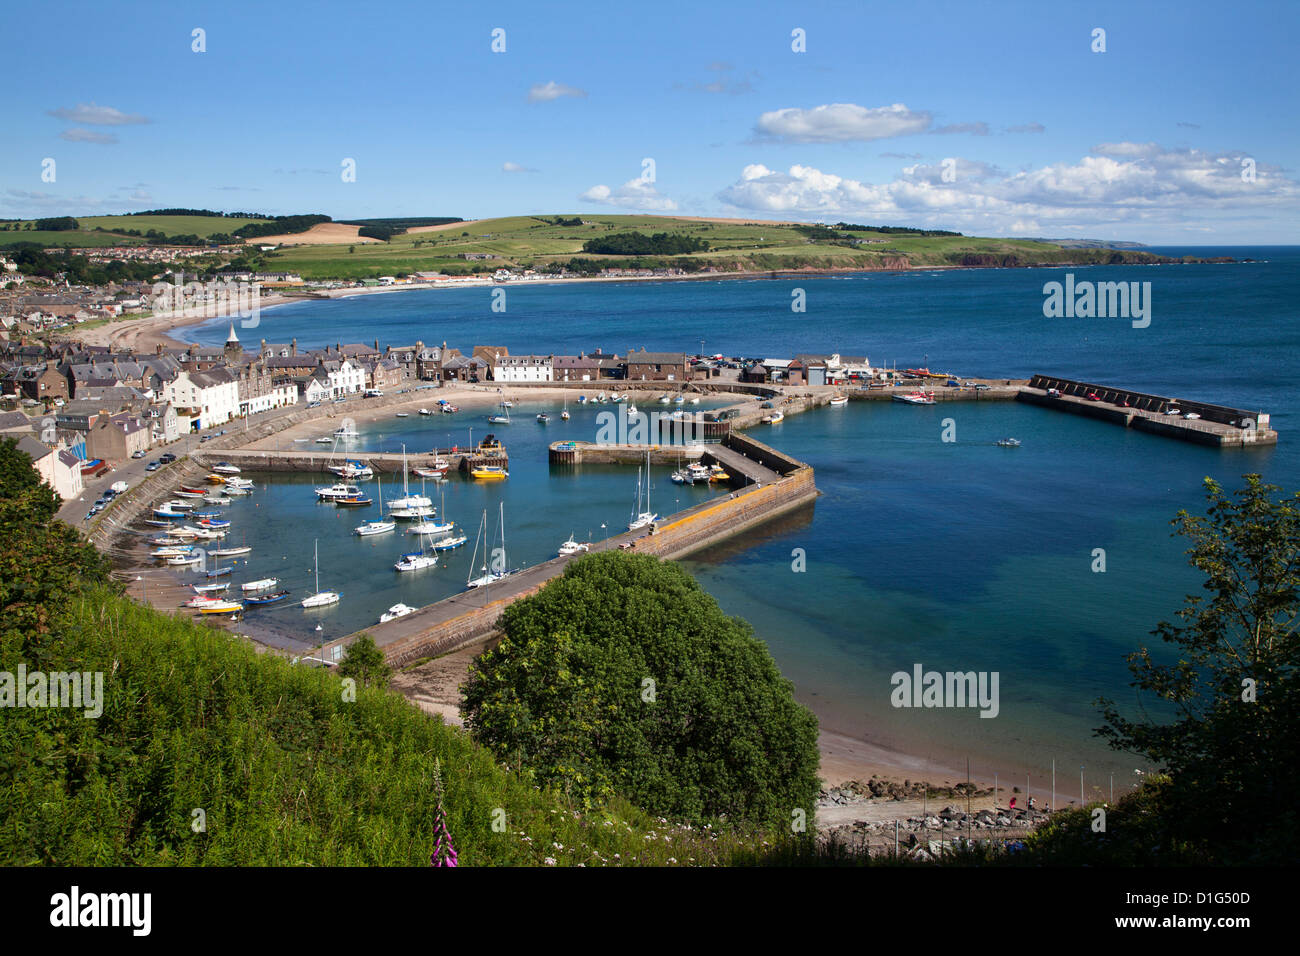 Stonehaven Harbour from Harbour View, Stonehaven, Aberdeenshire, Scotland, United Kingdom, Europe - Stock Image